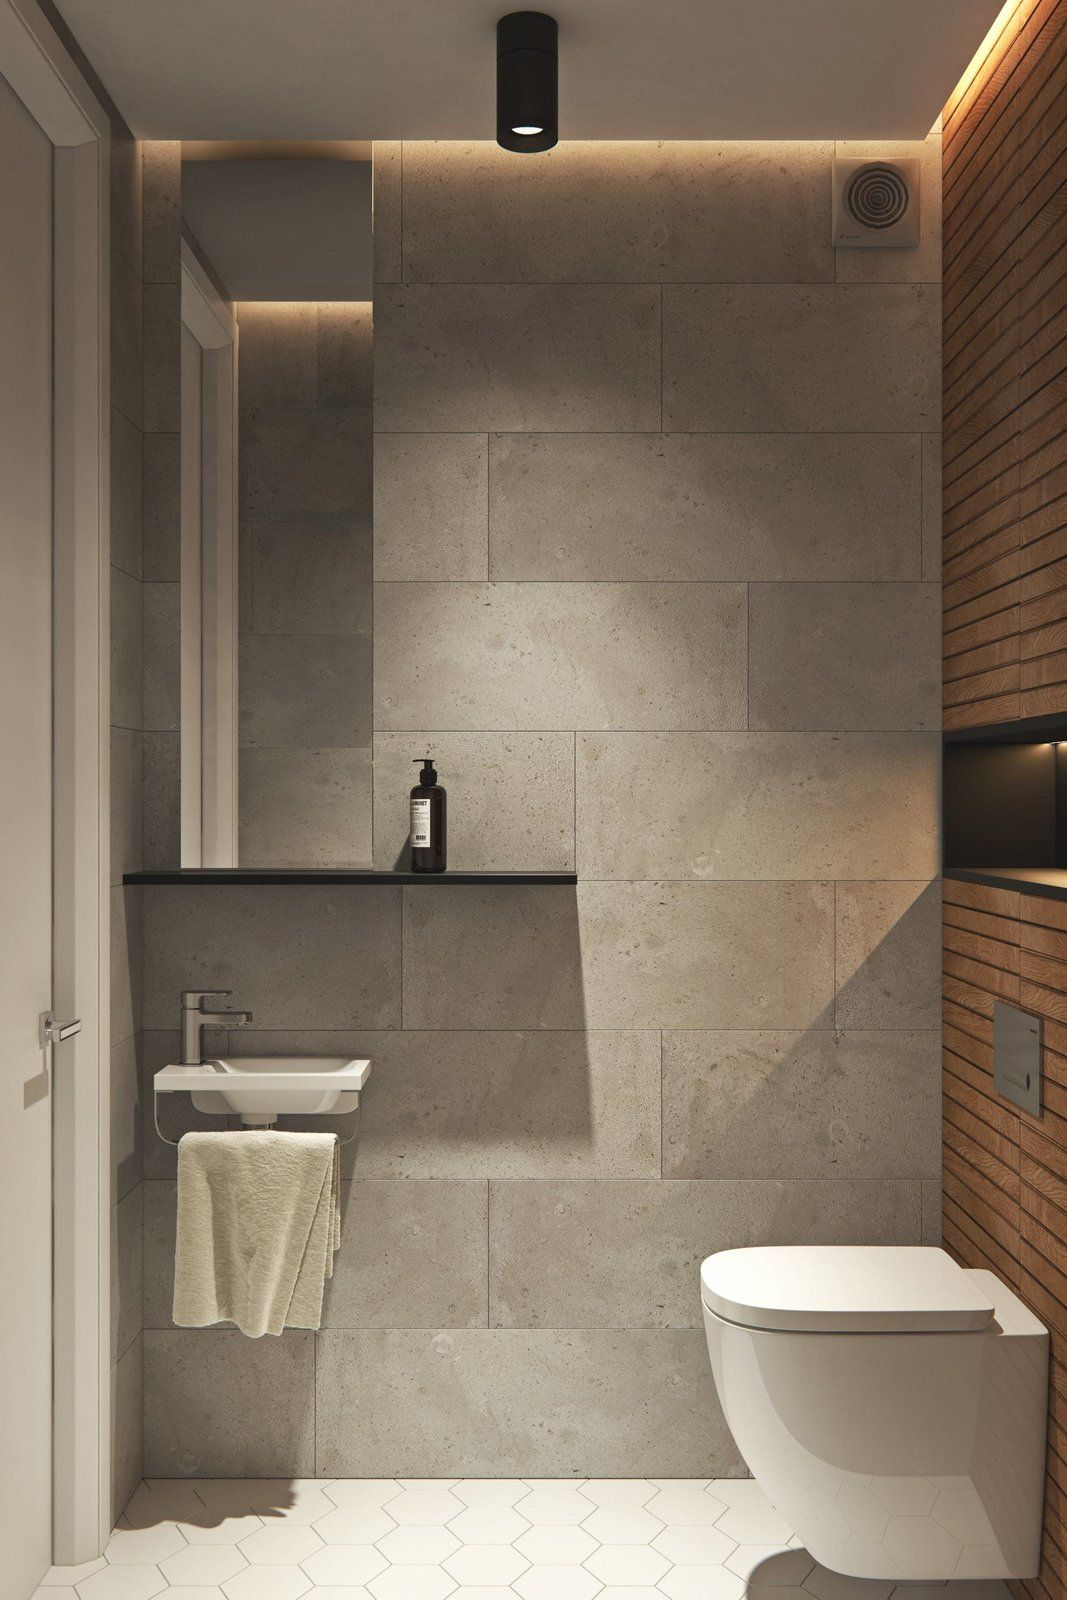 Interior Design Project In Contemporary Style By Geometrium Top